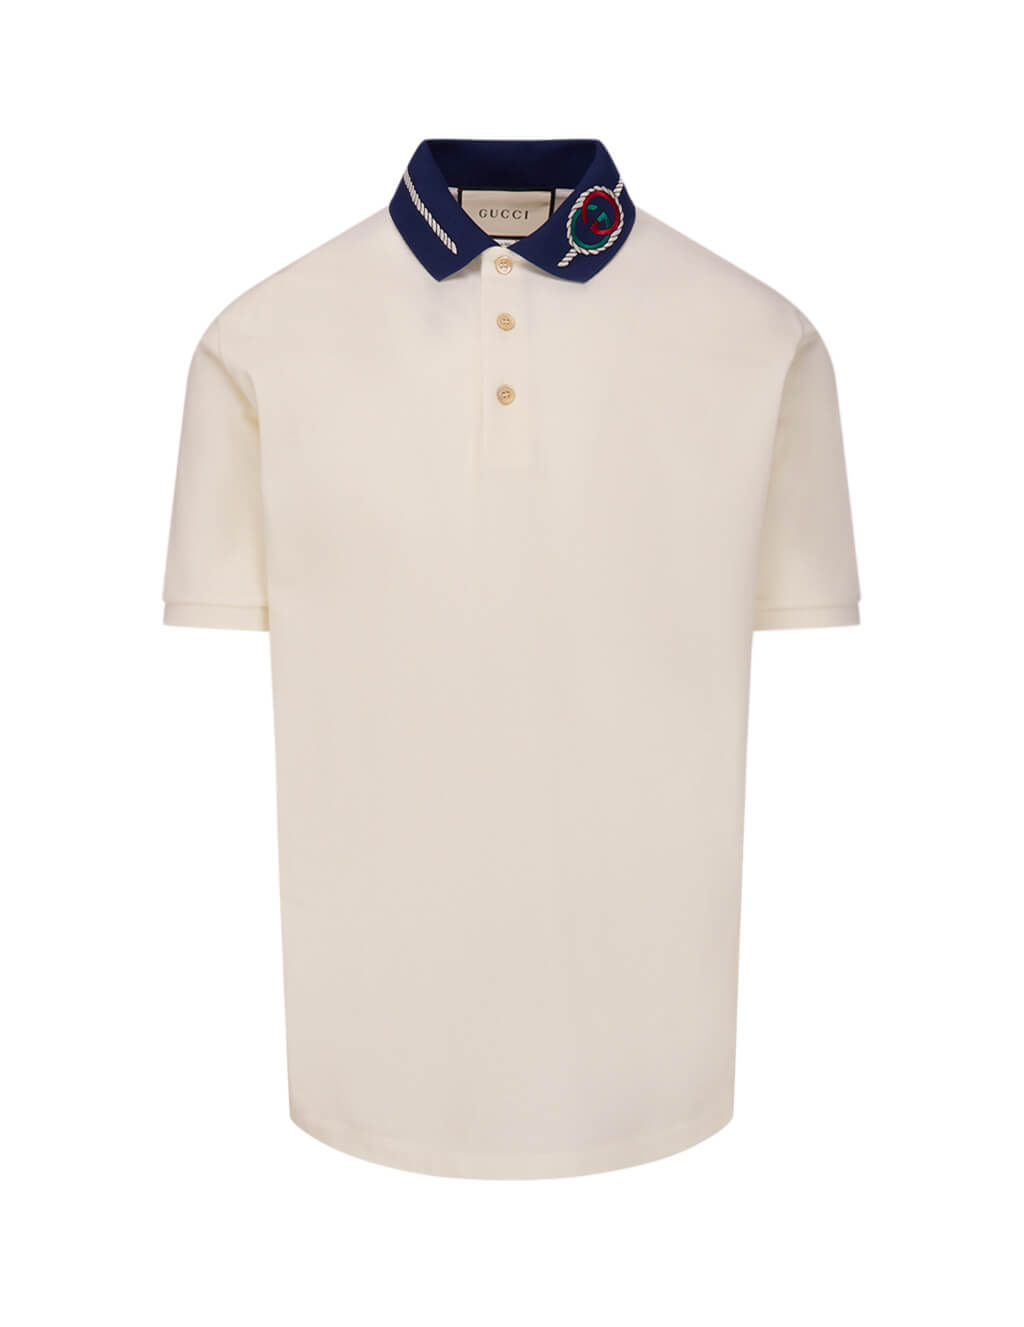 Men's Gucci Torchon Polo Shirt in Off White 598960 XJB0X 9280